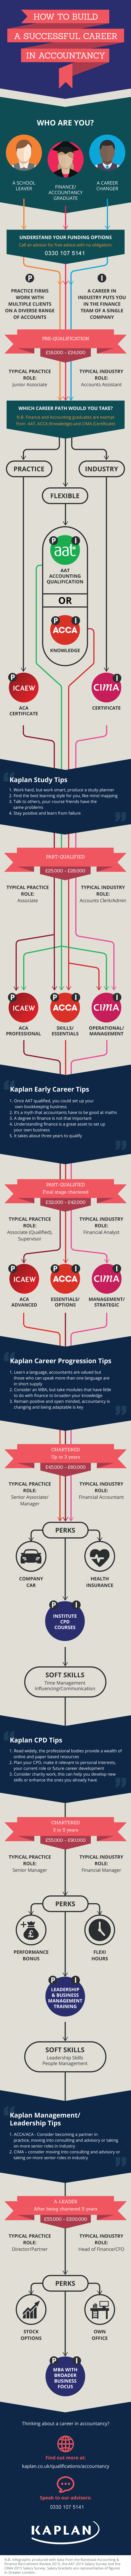 Guide To An Accountancy Career From Start To Finish